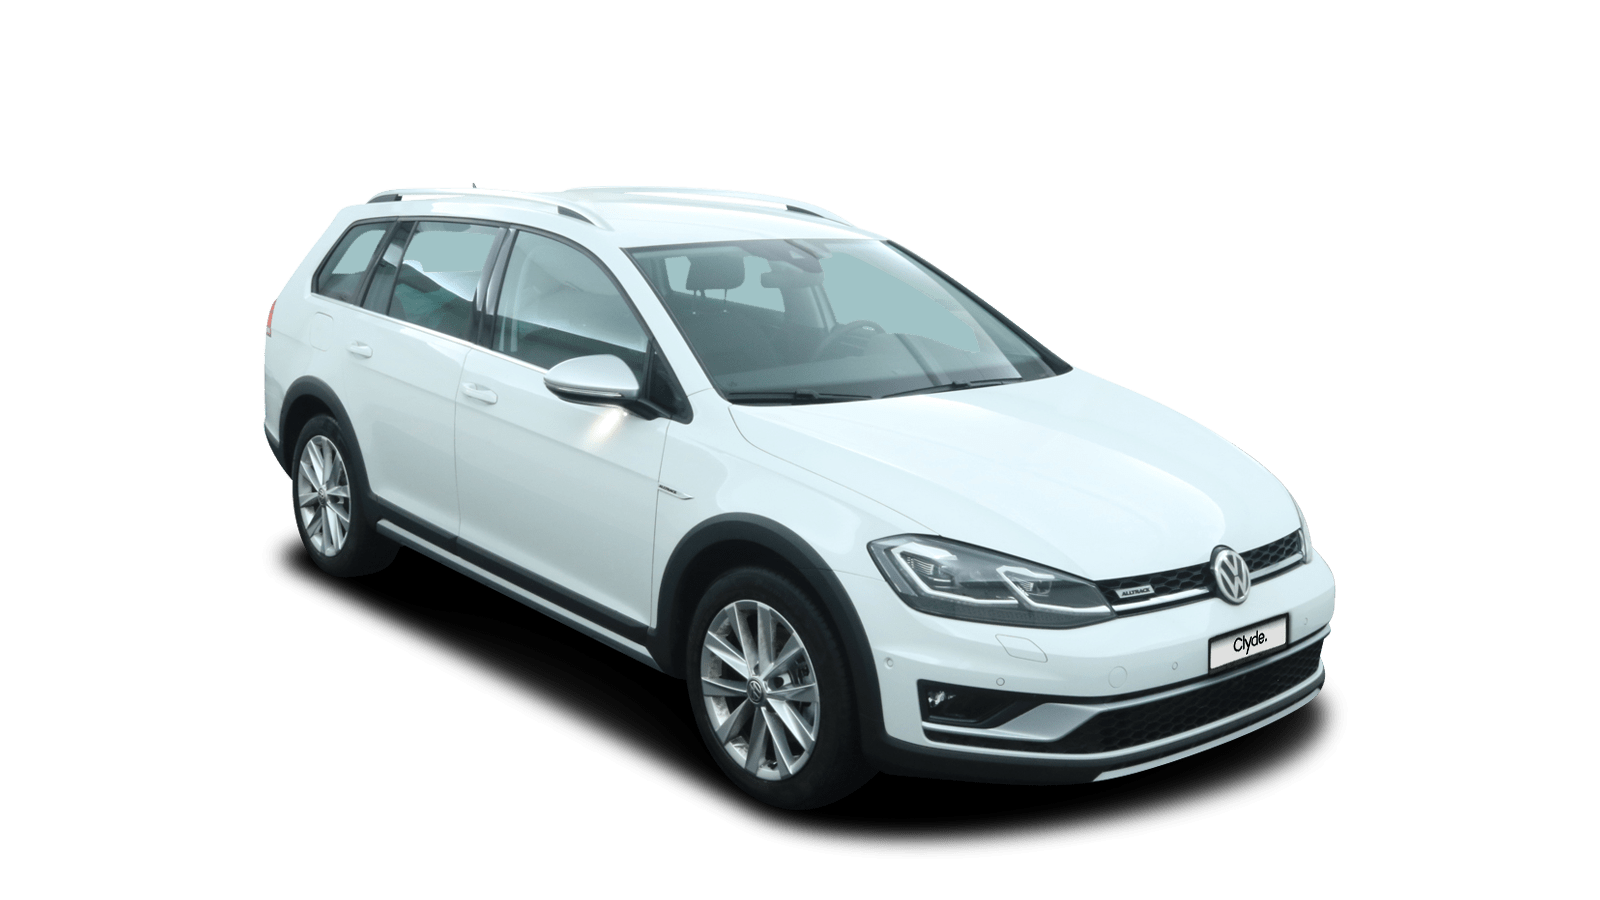 VW Golf Variant Alltrack White front - Clyde car subscription